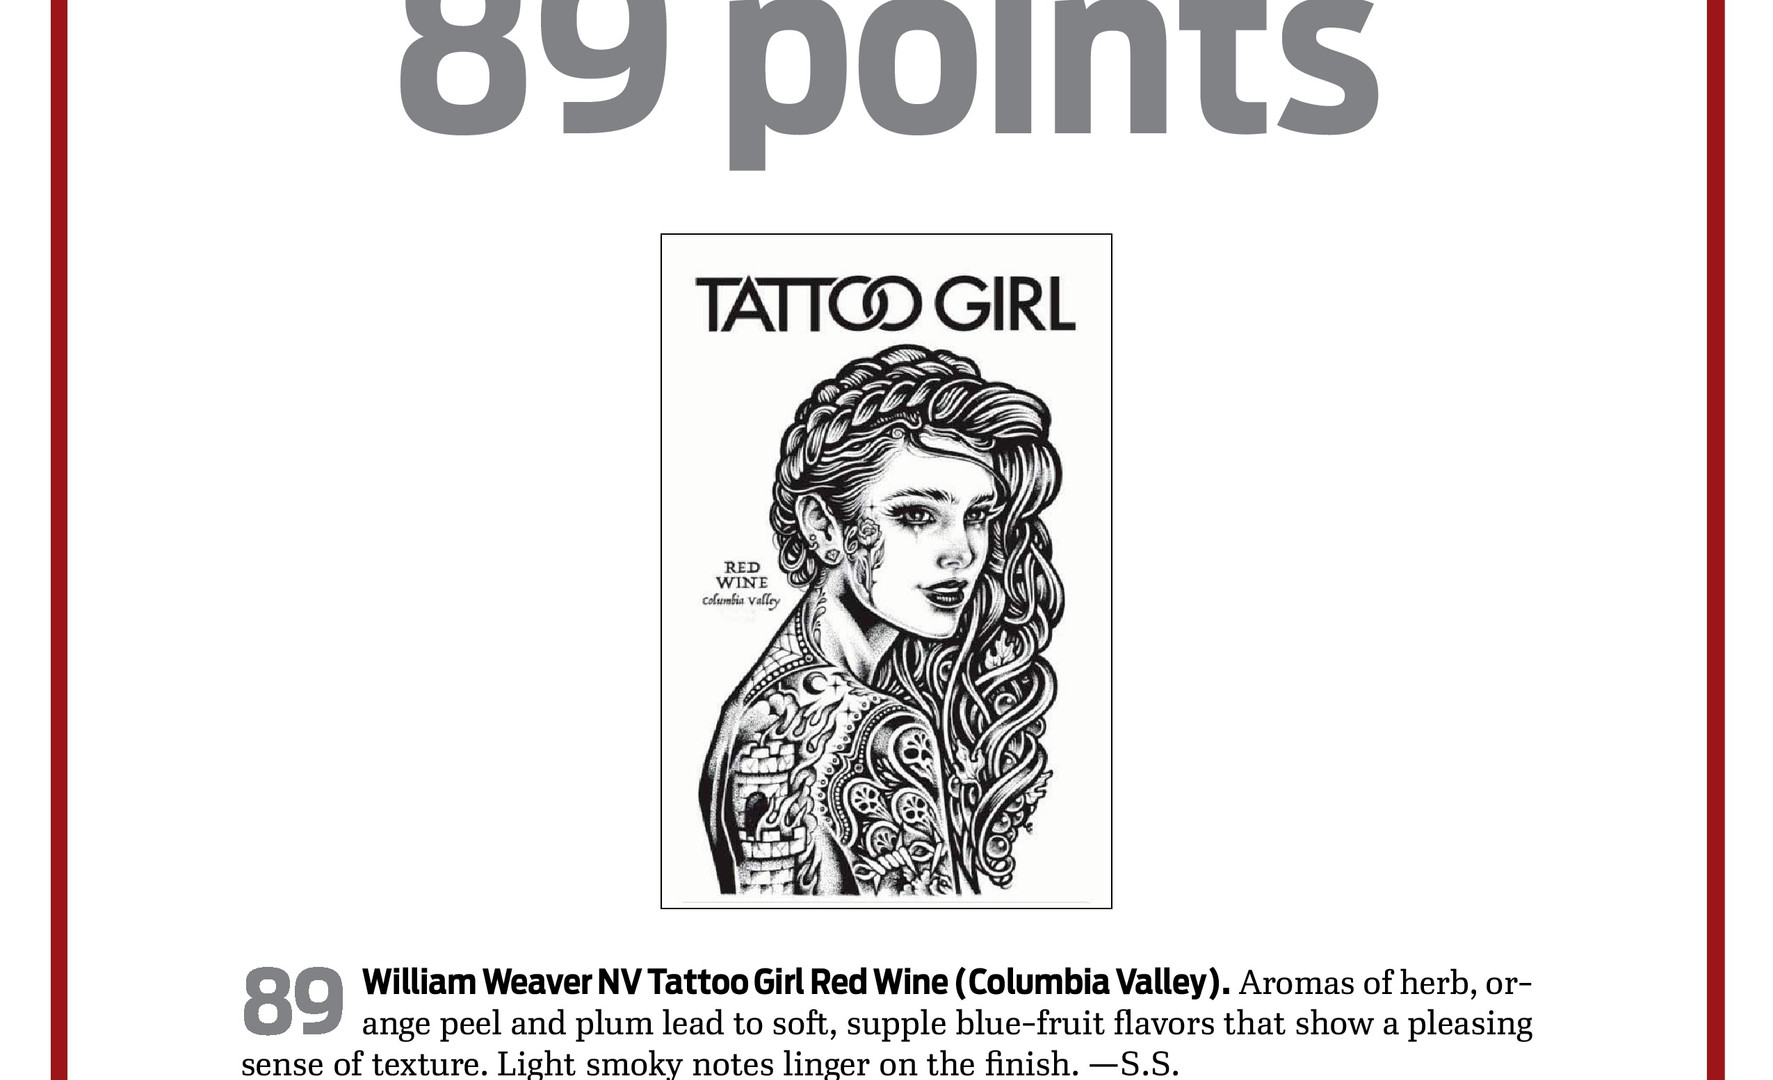 Tattoo Girl Red Wine